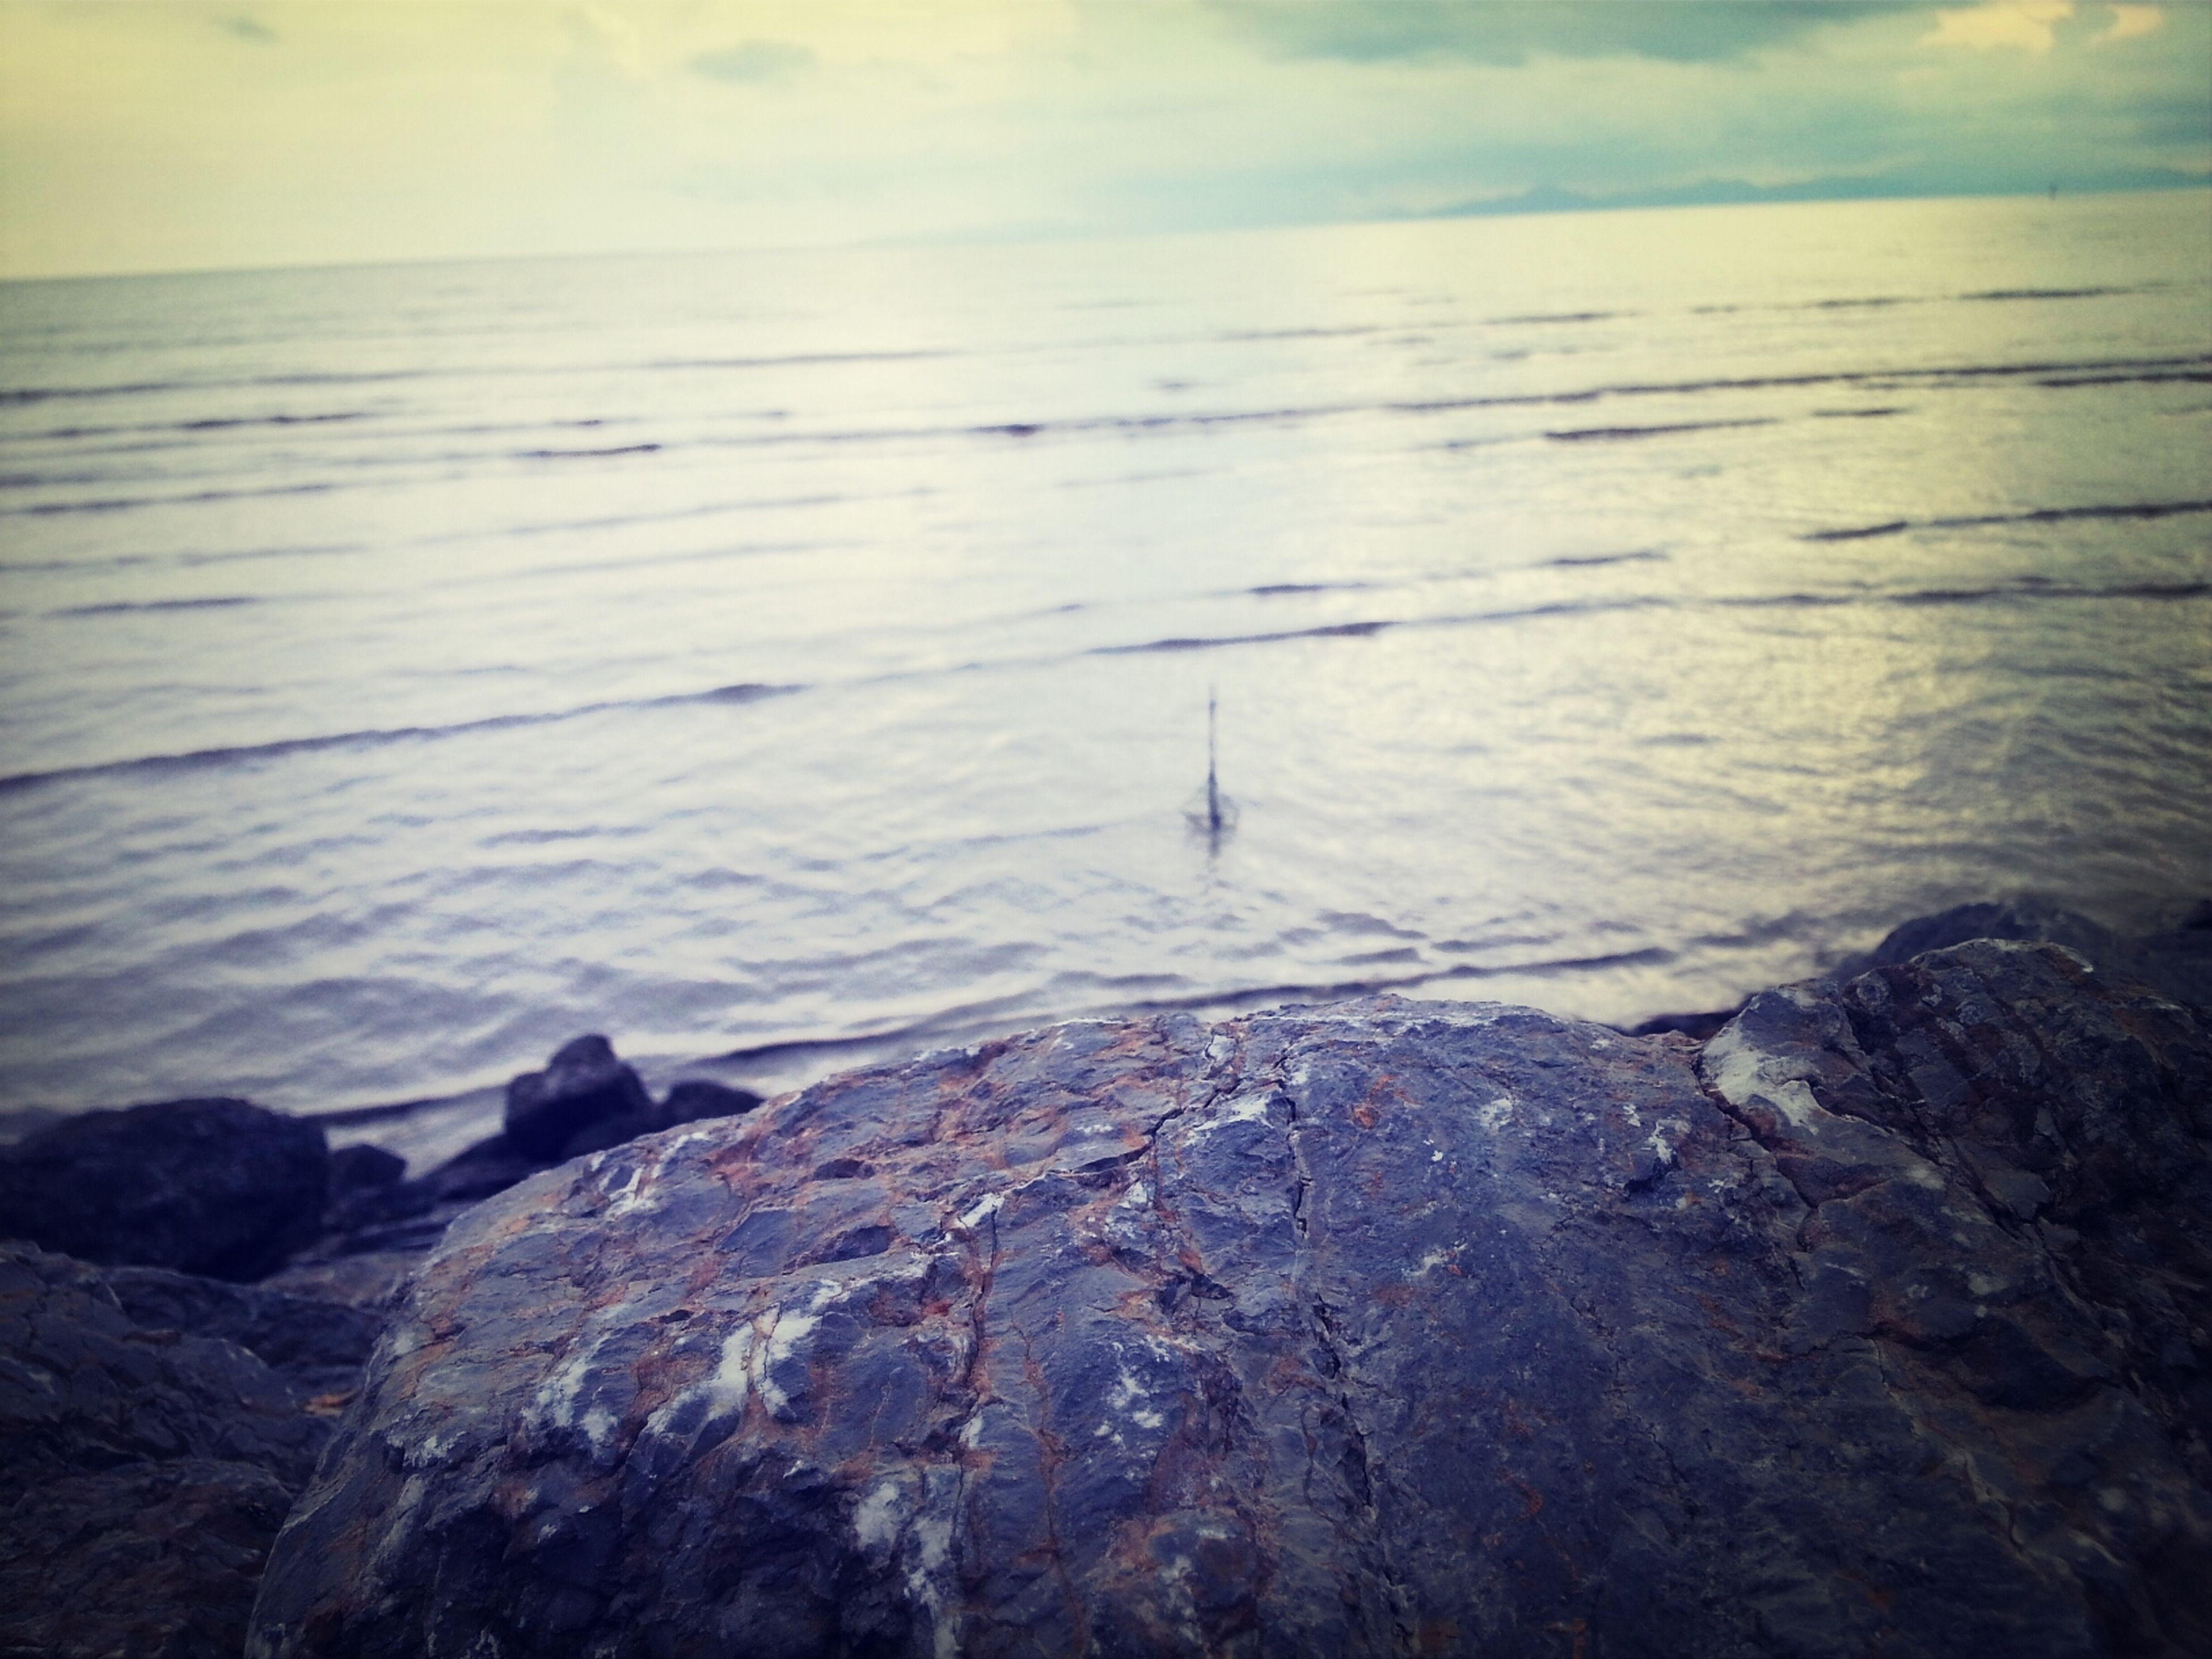 water, sea, tranquil scene, tranquility, scenics, beauty in nature, rock - object, sky, nature, horizon over water, sunset, idyllic, rock, shore, cloud - sky, outdoors, remote, non-urban scene, reflection, dusk